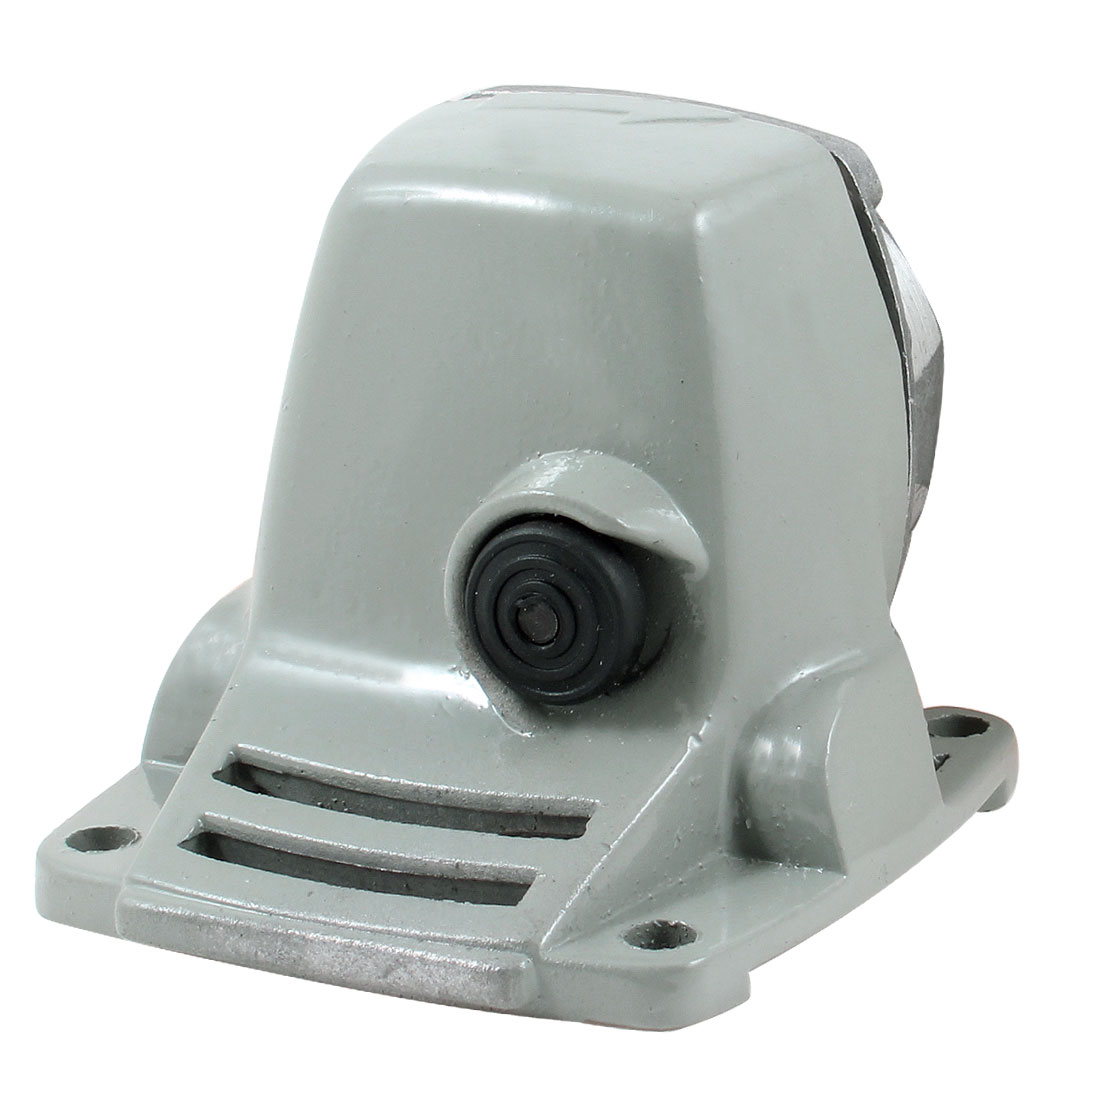 Replacement Silver Gray Metal Angle Grinder Head Shell Cover for Hitachi